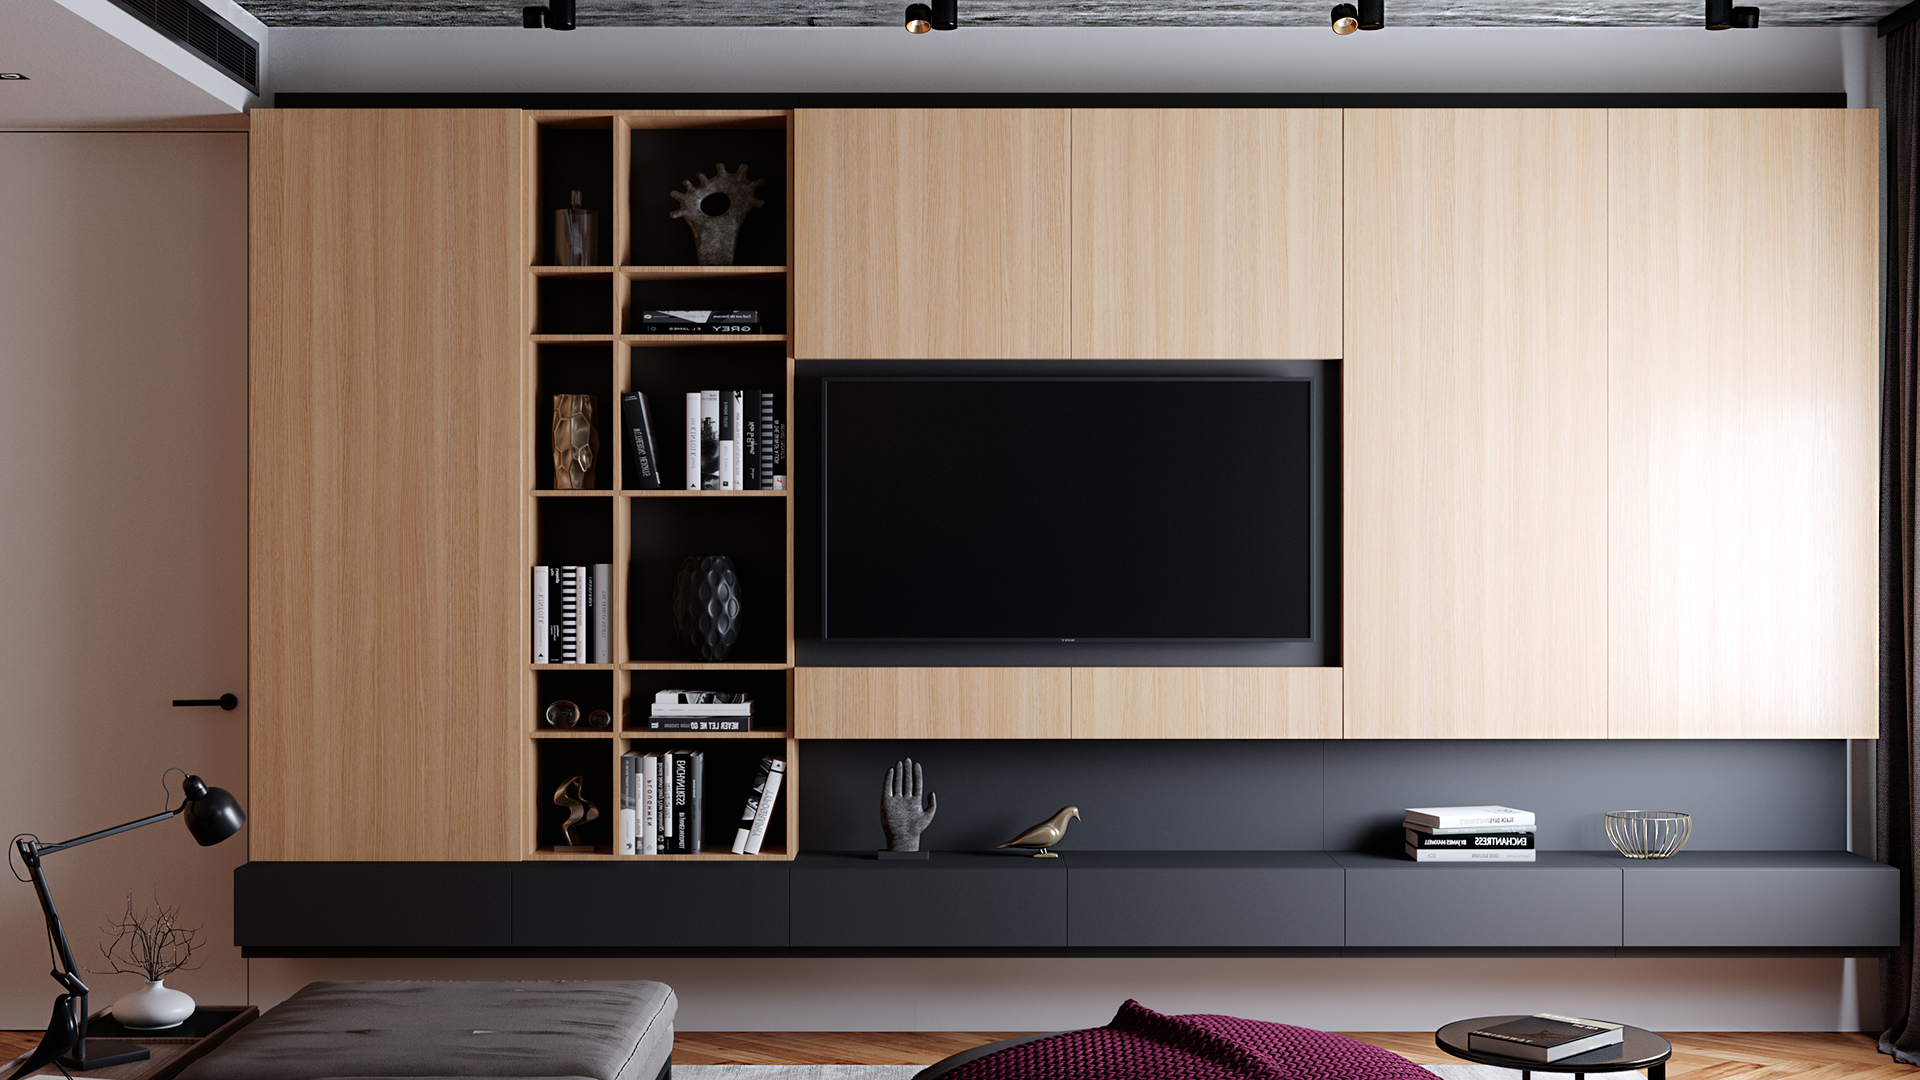 pin by jiaqi liang on livingroom loft interior design on incredible tv wall design ideas for living room decor layouts of tv models id=99832